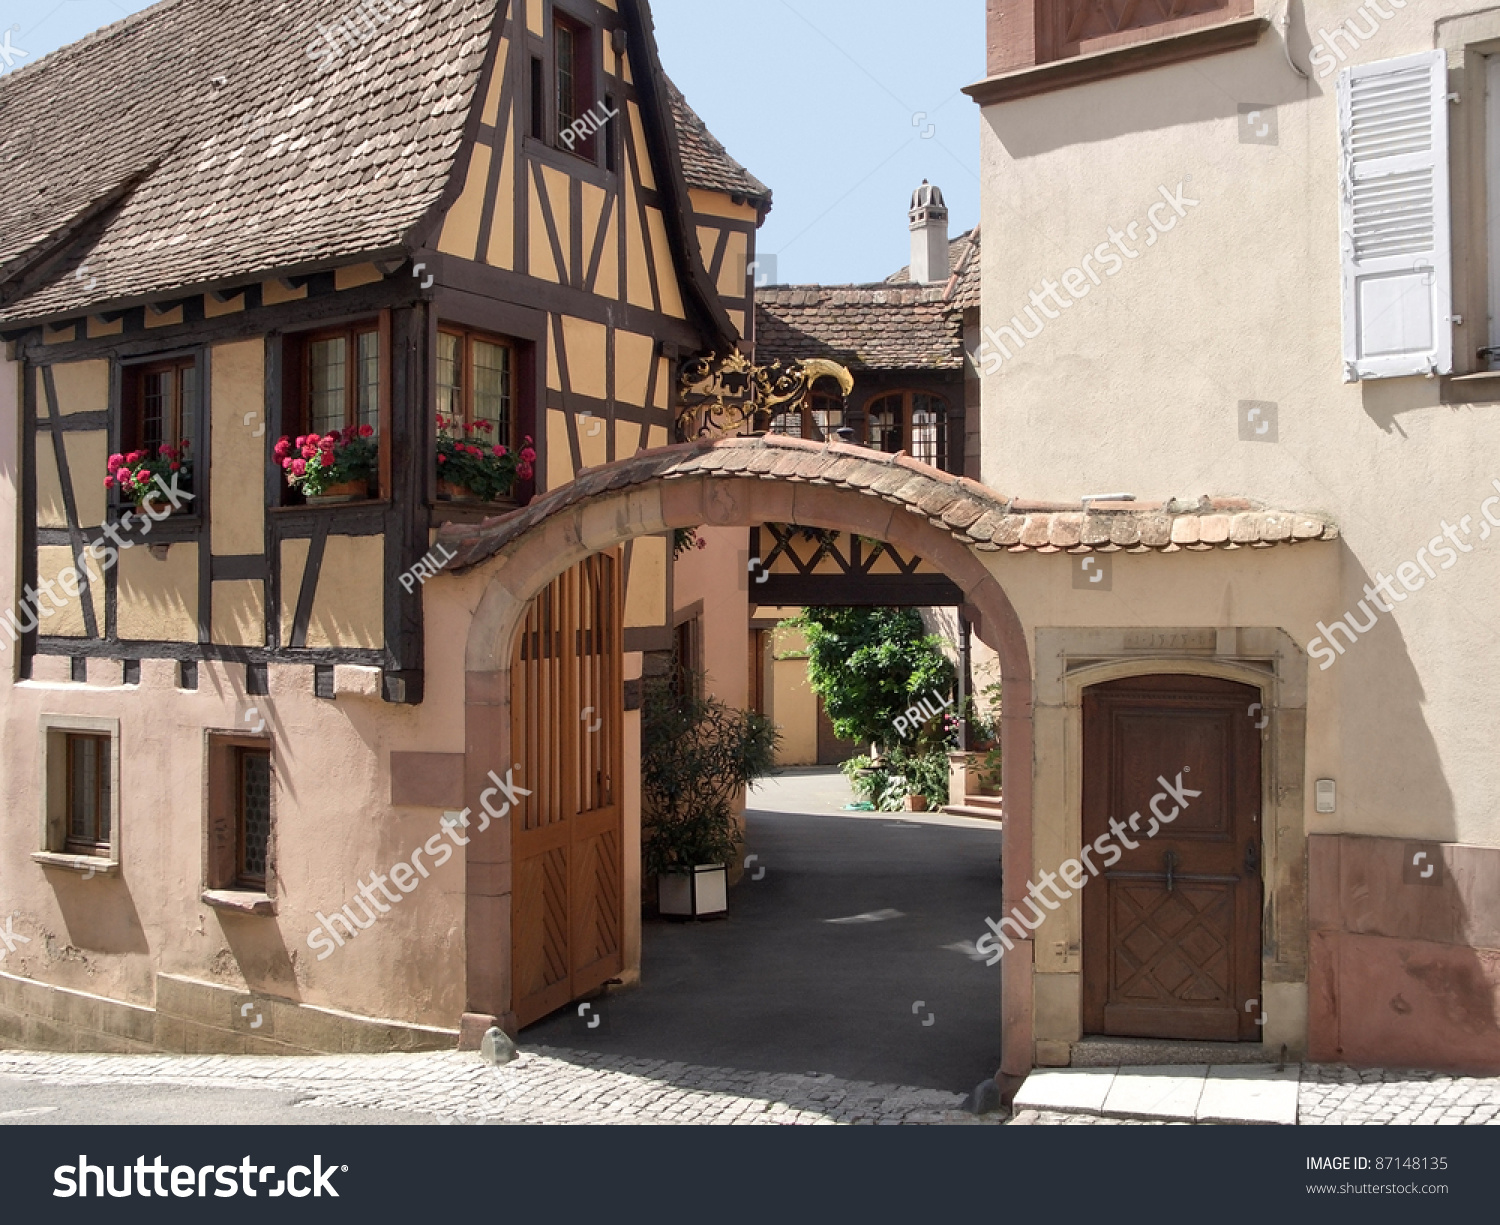 Strange Architectural Detail With Half Timbered House In Mittelbergheim A Largest Home Design Picture Inspirations Pitcheantrous